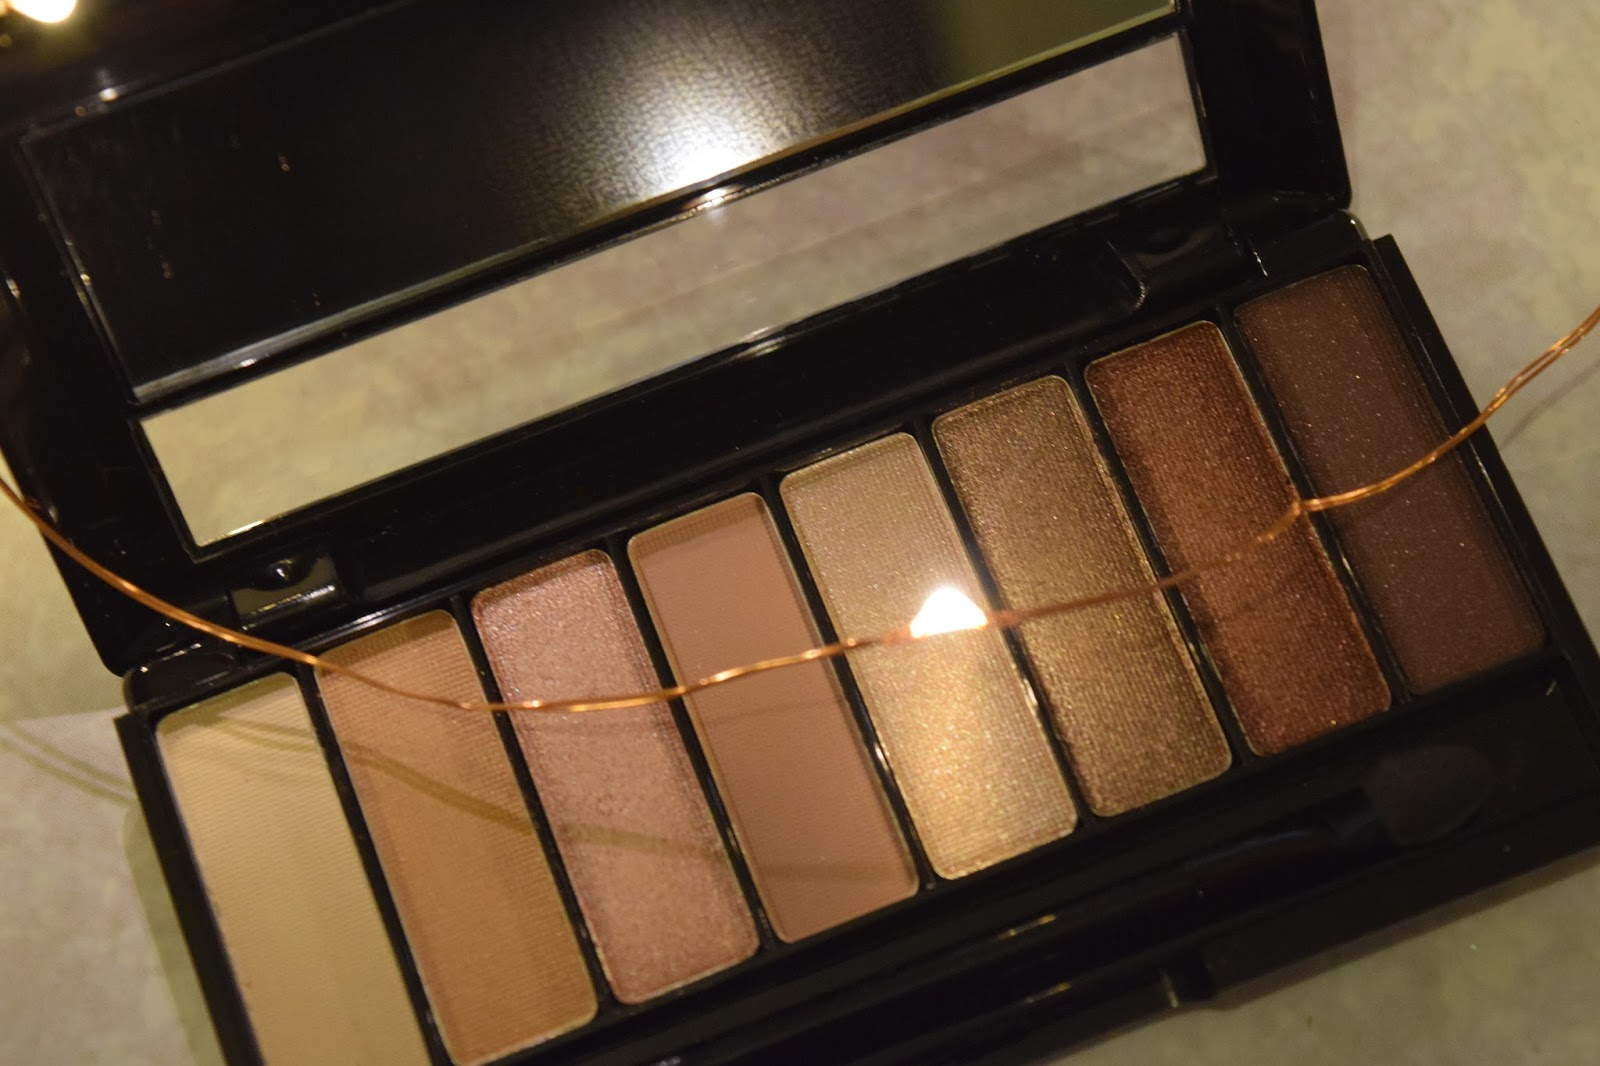 small resolution of the rimmel magnif eyes eye contouring palette in 002 london nudes calling is actually stunning on the back it has a diagram for which order to use the